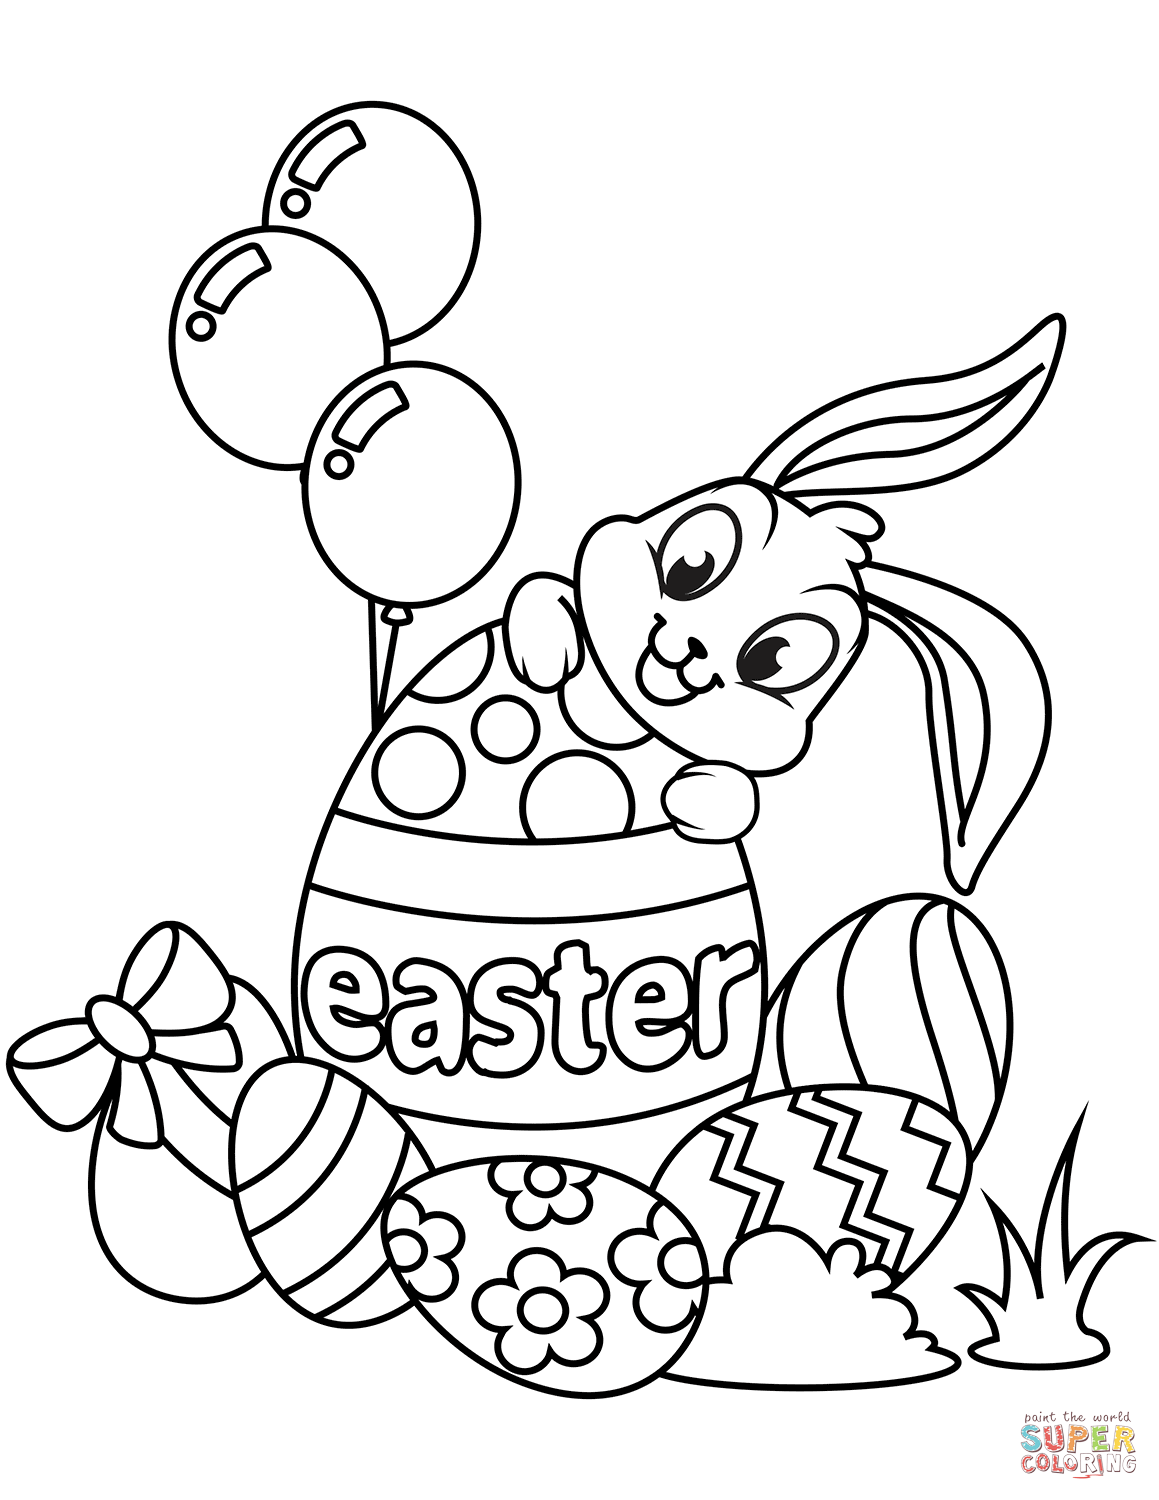 Cute Easter Bunny And Eggs Coloring Page Free Printable Coloring Pages Easter Bunny Colouring Easter Coloring Book Easter Coloring Sheets